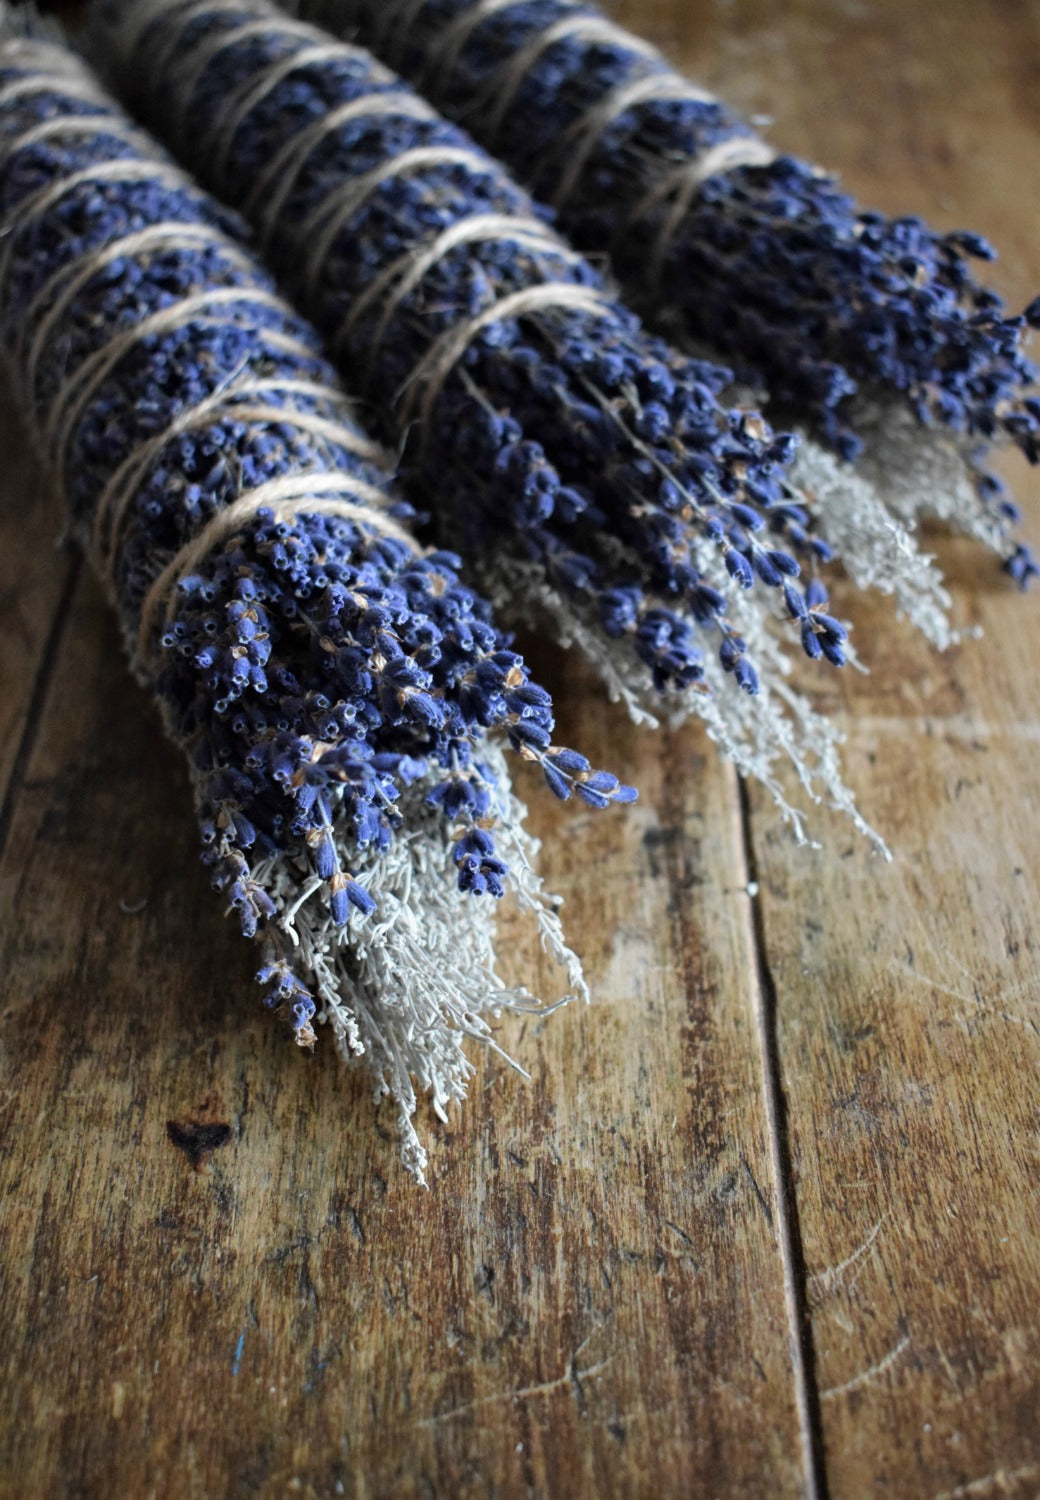 WILD SAGEBRUSH + LAVENDER RITUAL SMOKE WAND | CANYONLANDS WILD SAGEBRUSH | HAND-HARVESTED